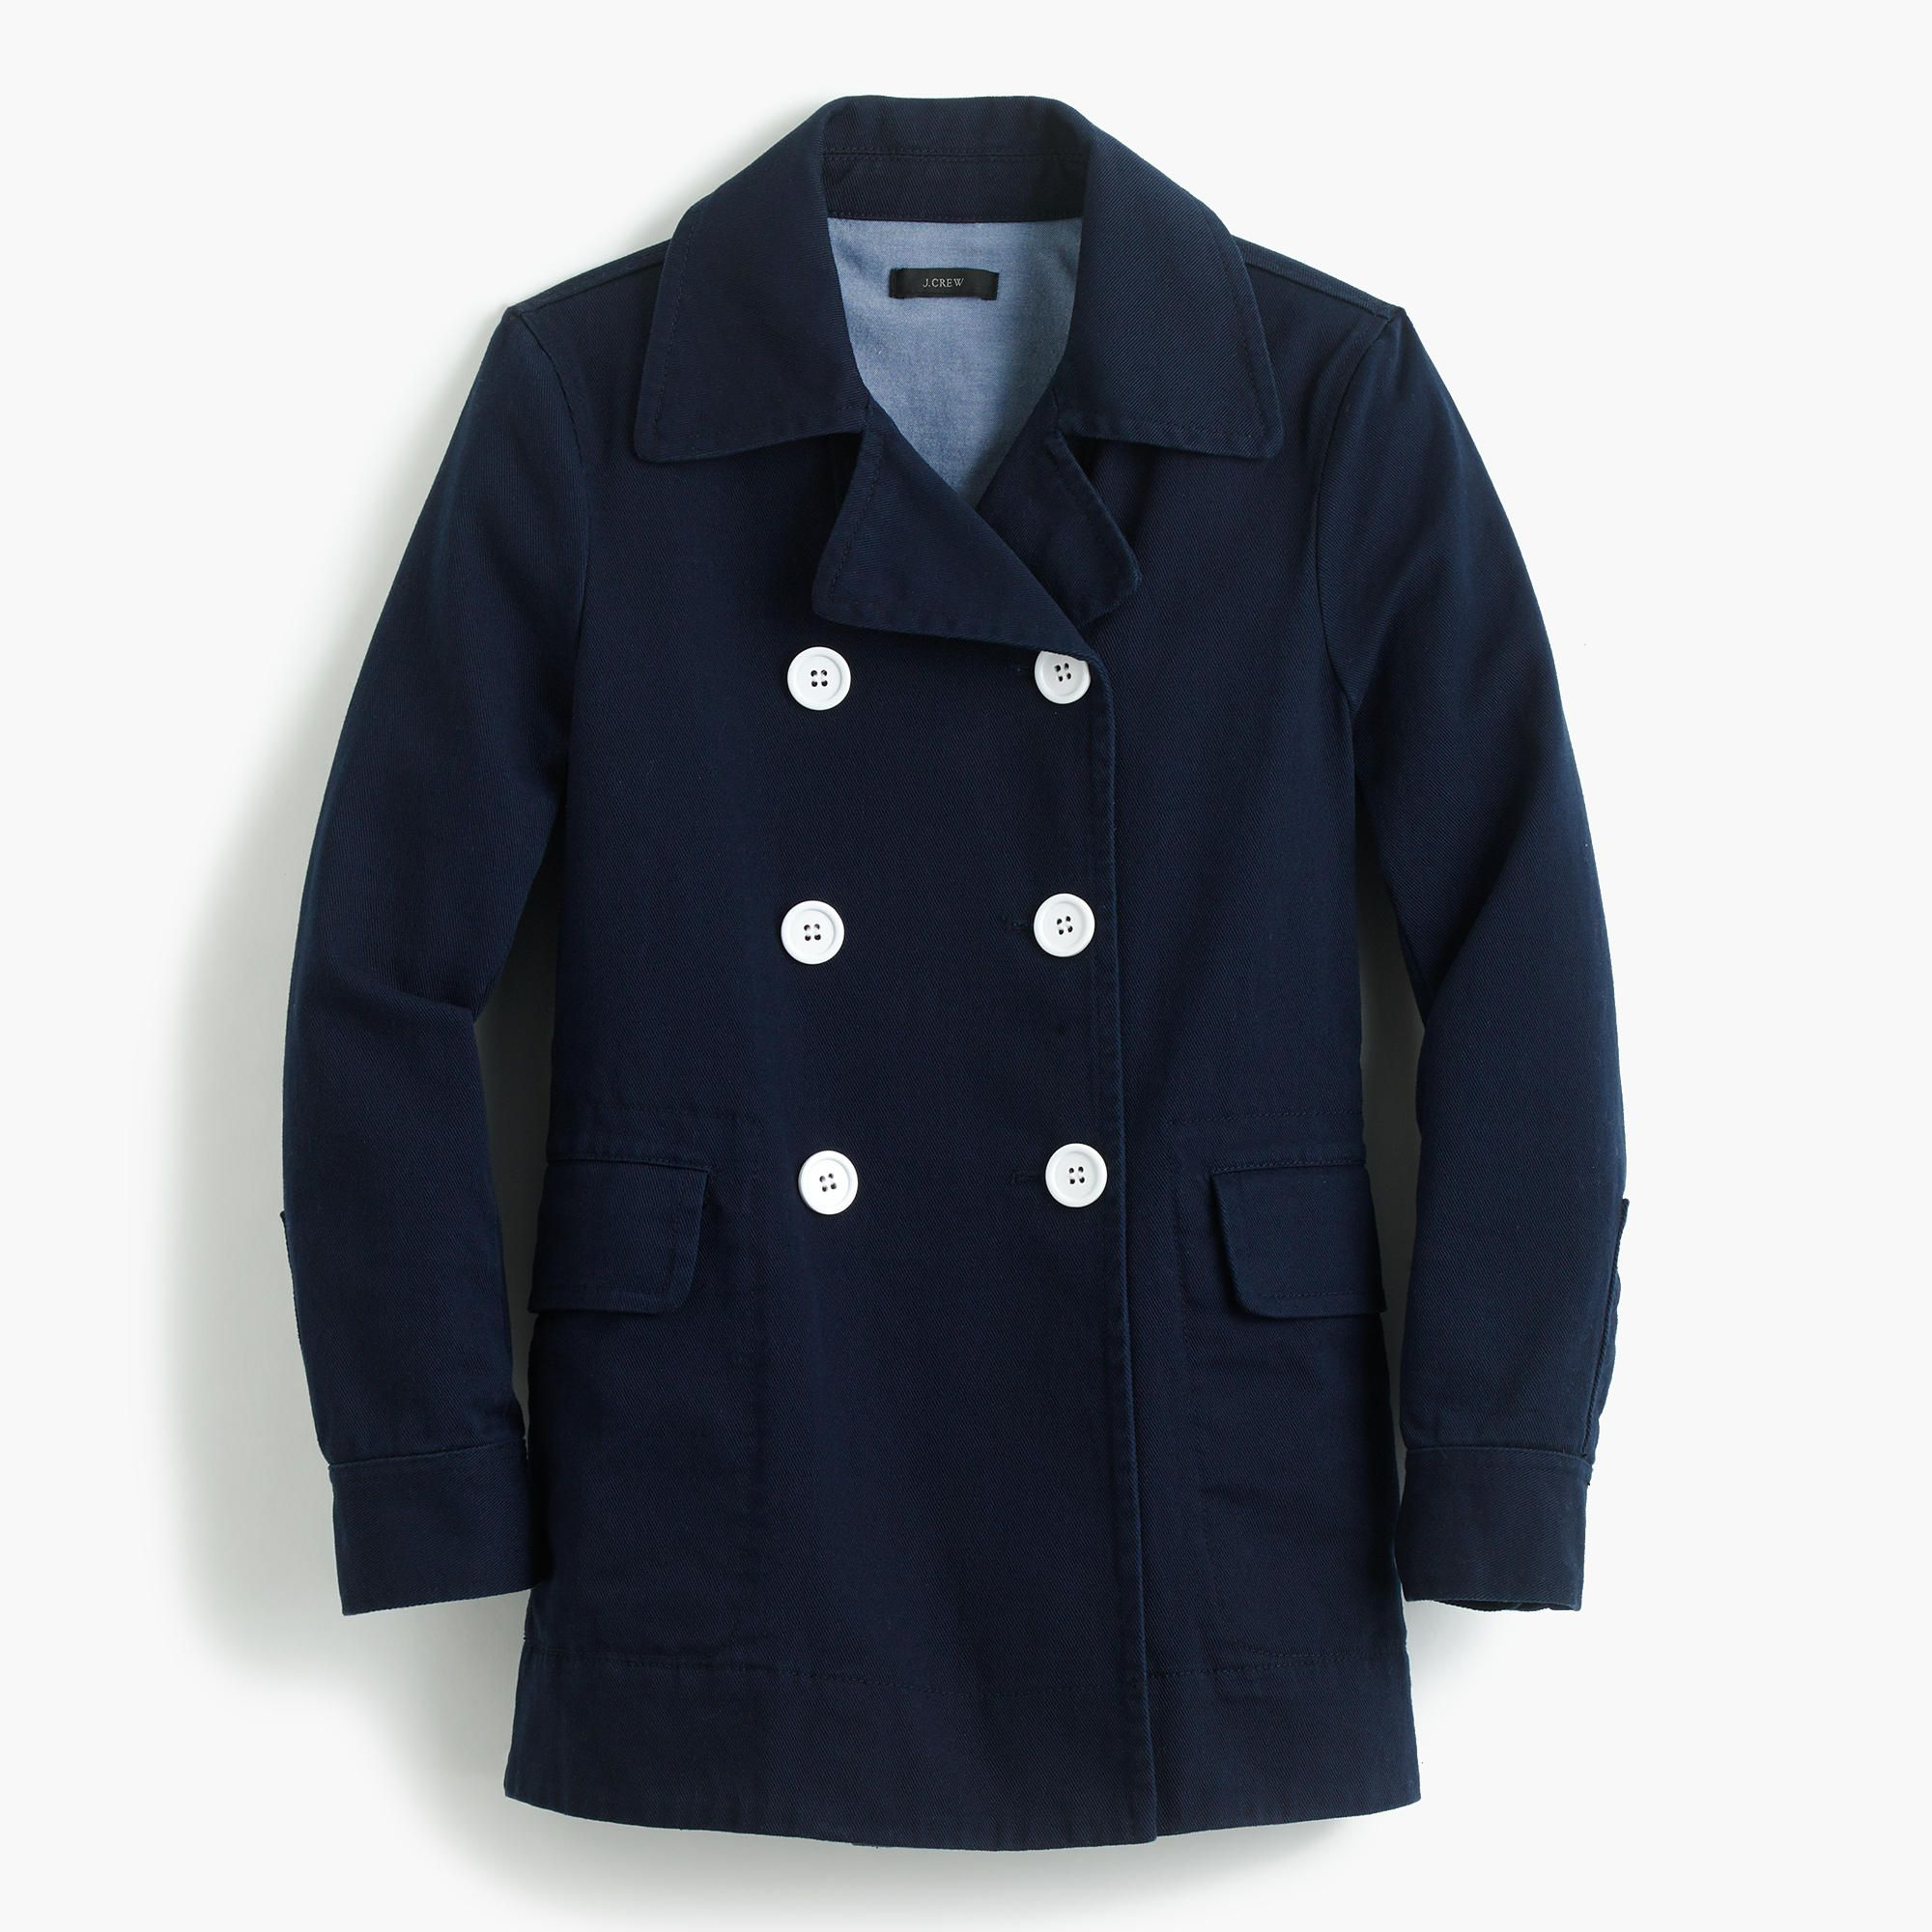 J.Crew Womens Peacoat In Heavyweight Cotton Twill (Size 000 ...